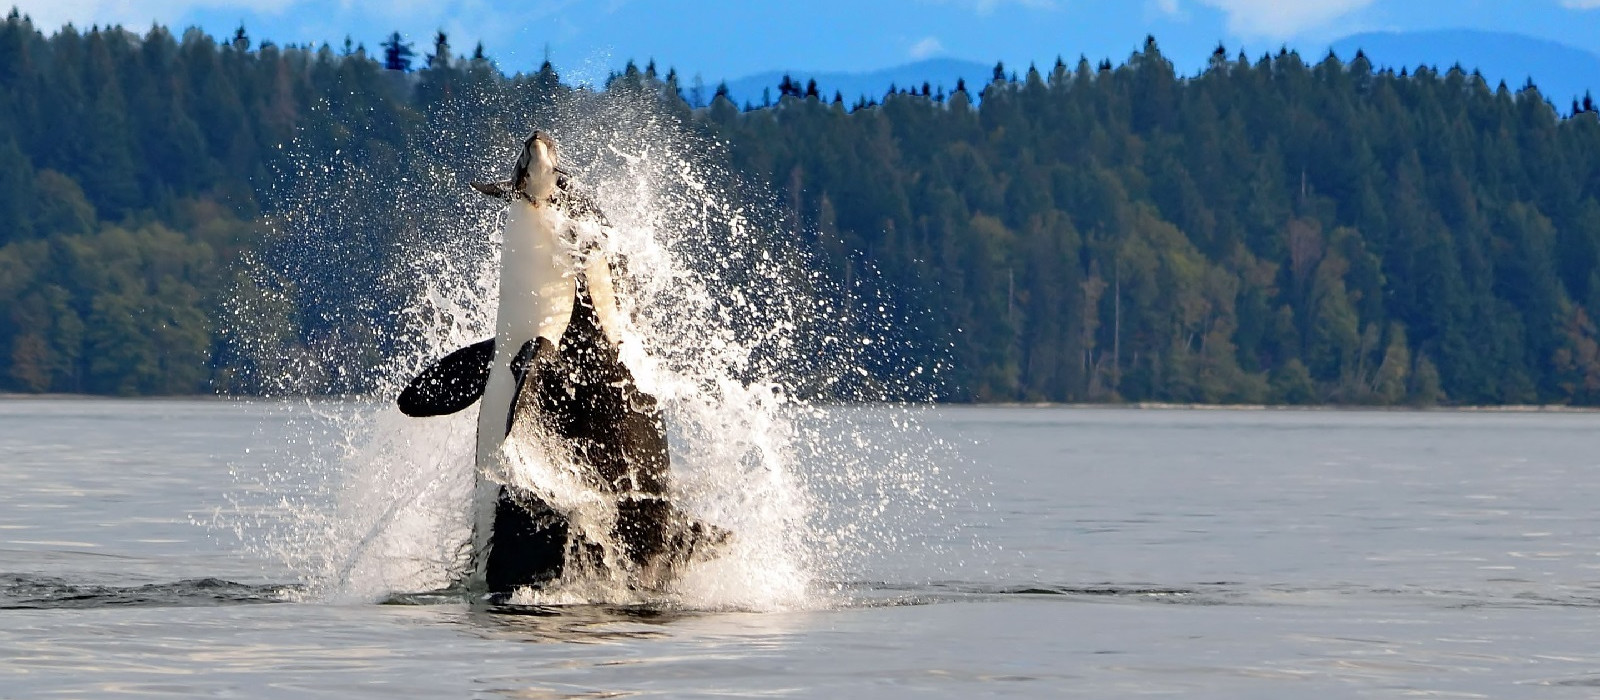 Dramatic photo of orca breaching in discovery channel with a mountain backdrop